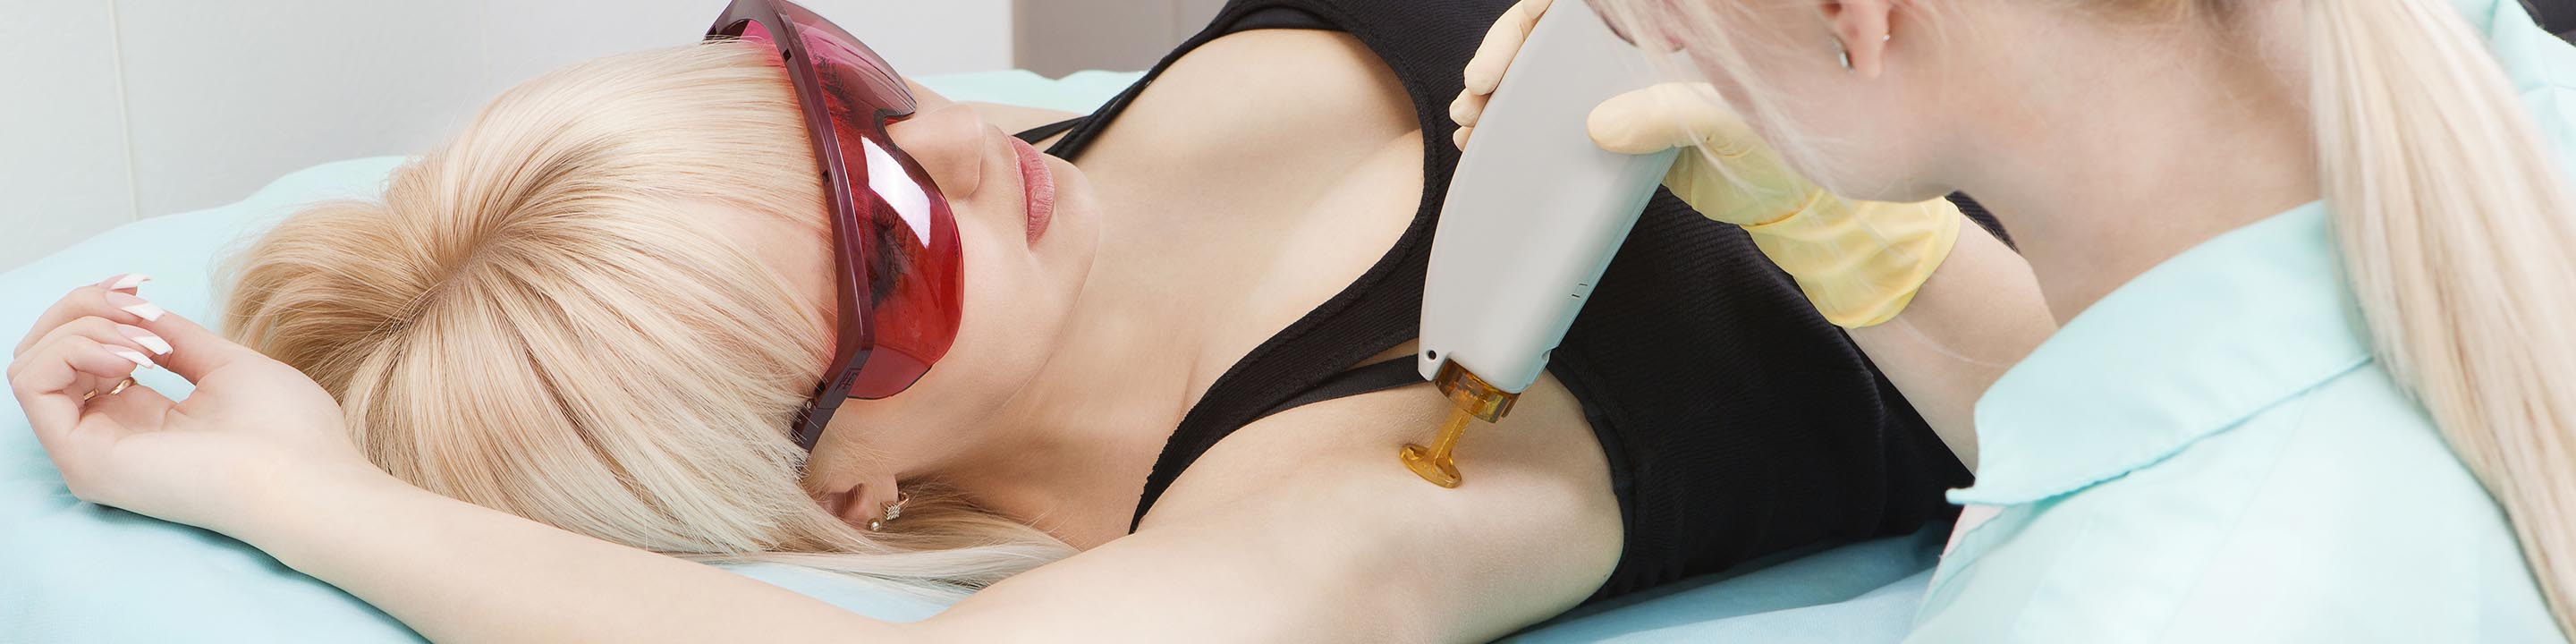 Image of woman having laser skin treatment on her arm.